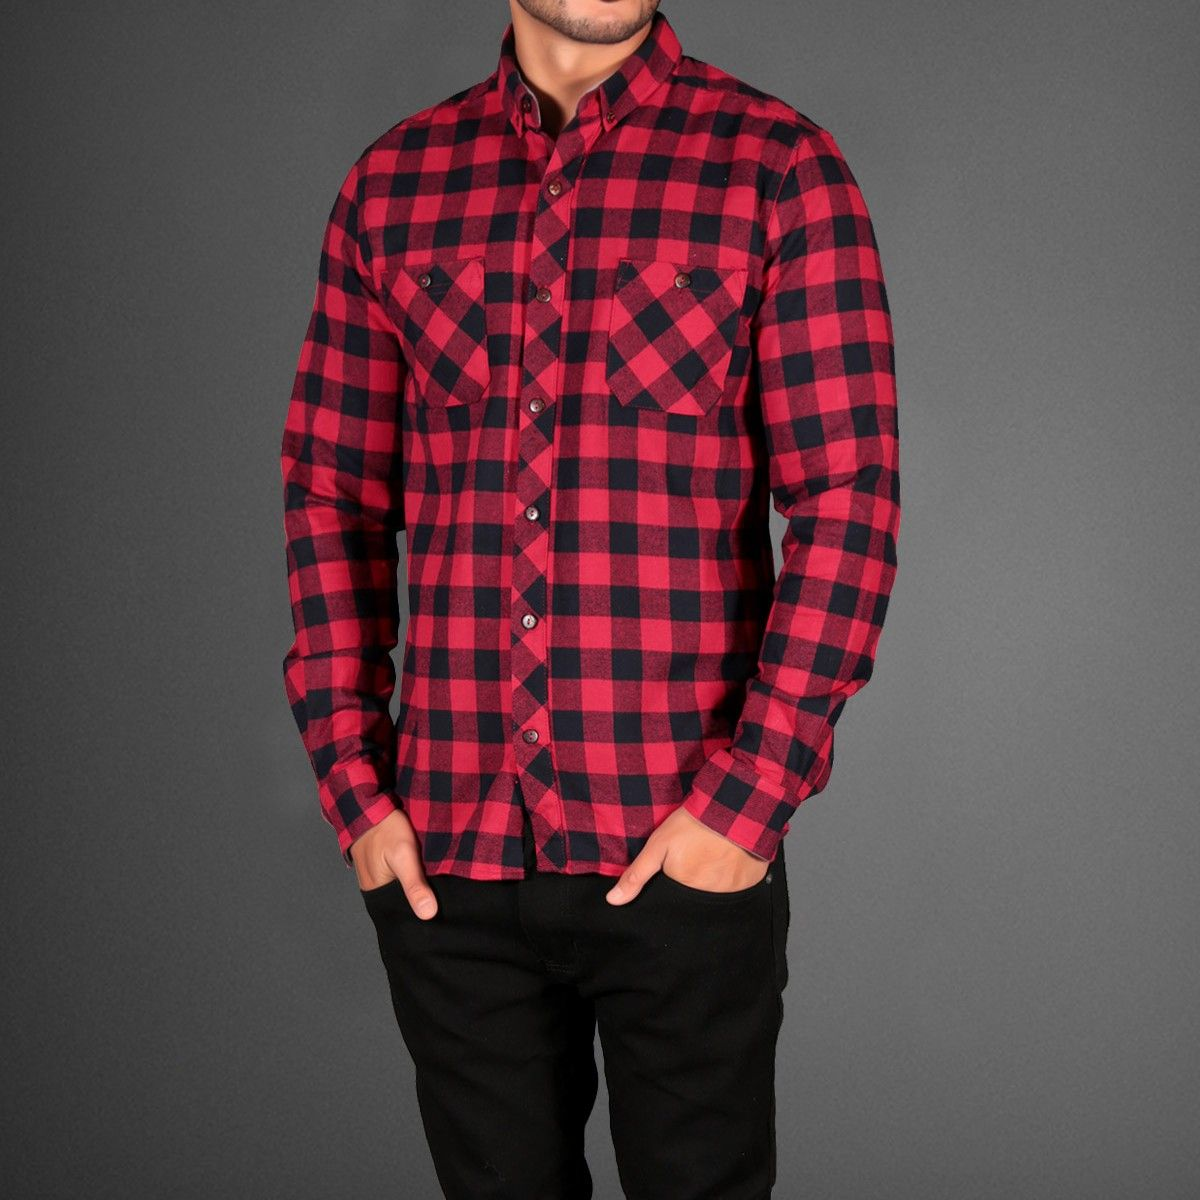 Red And Black Plaid Flannel Check Shirt | Dope Swag | Pinterest ...